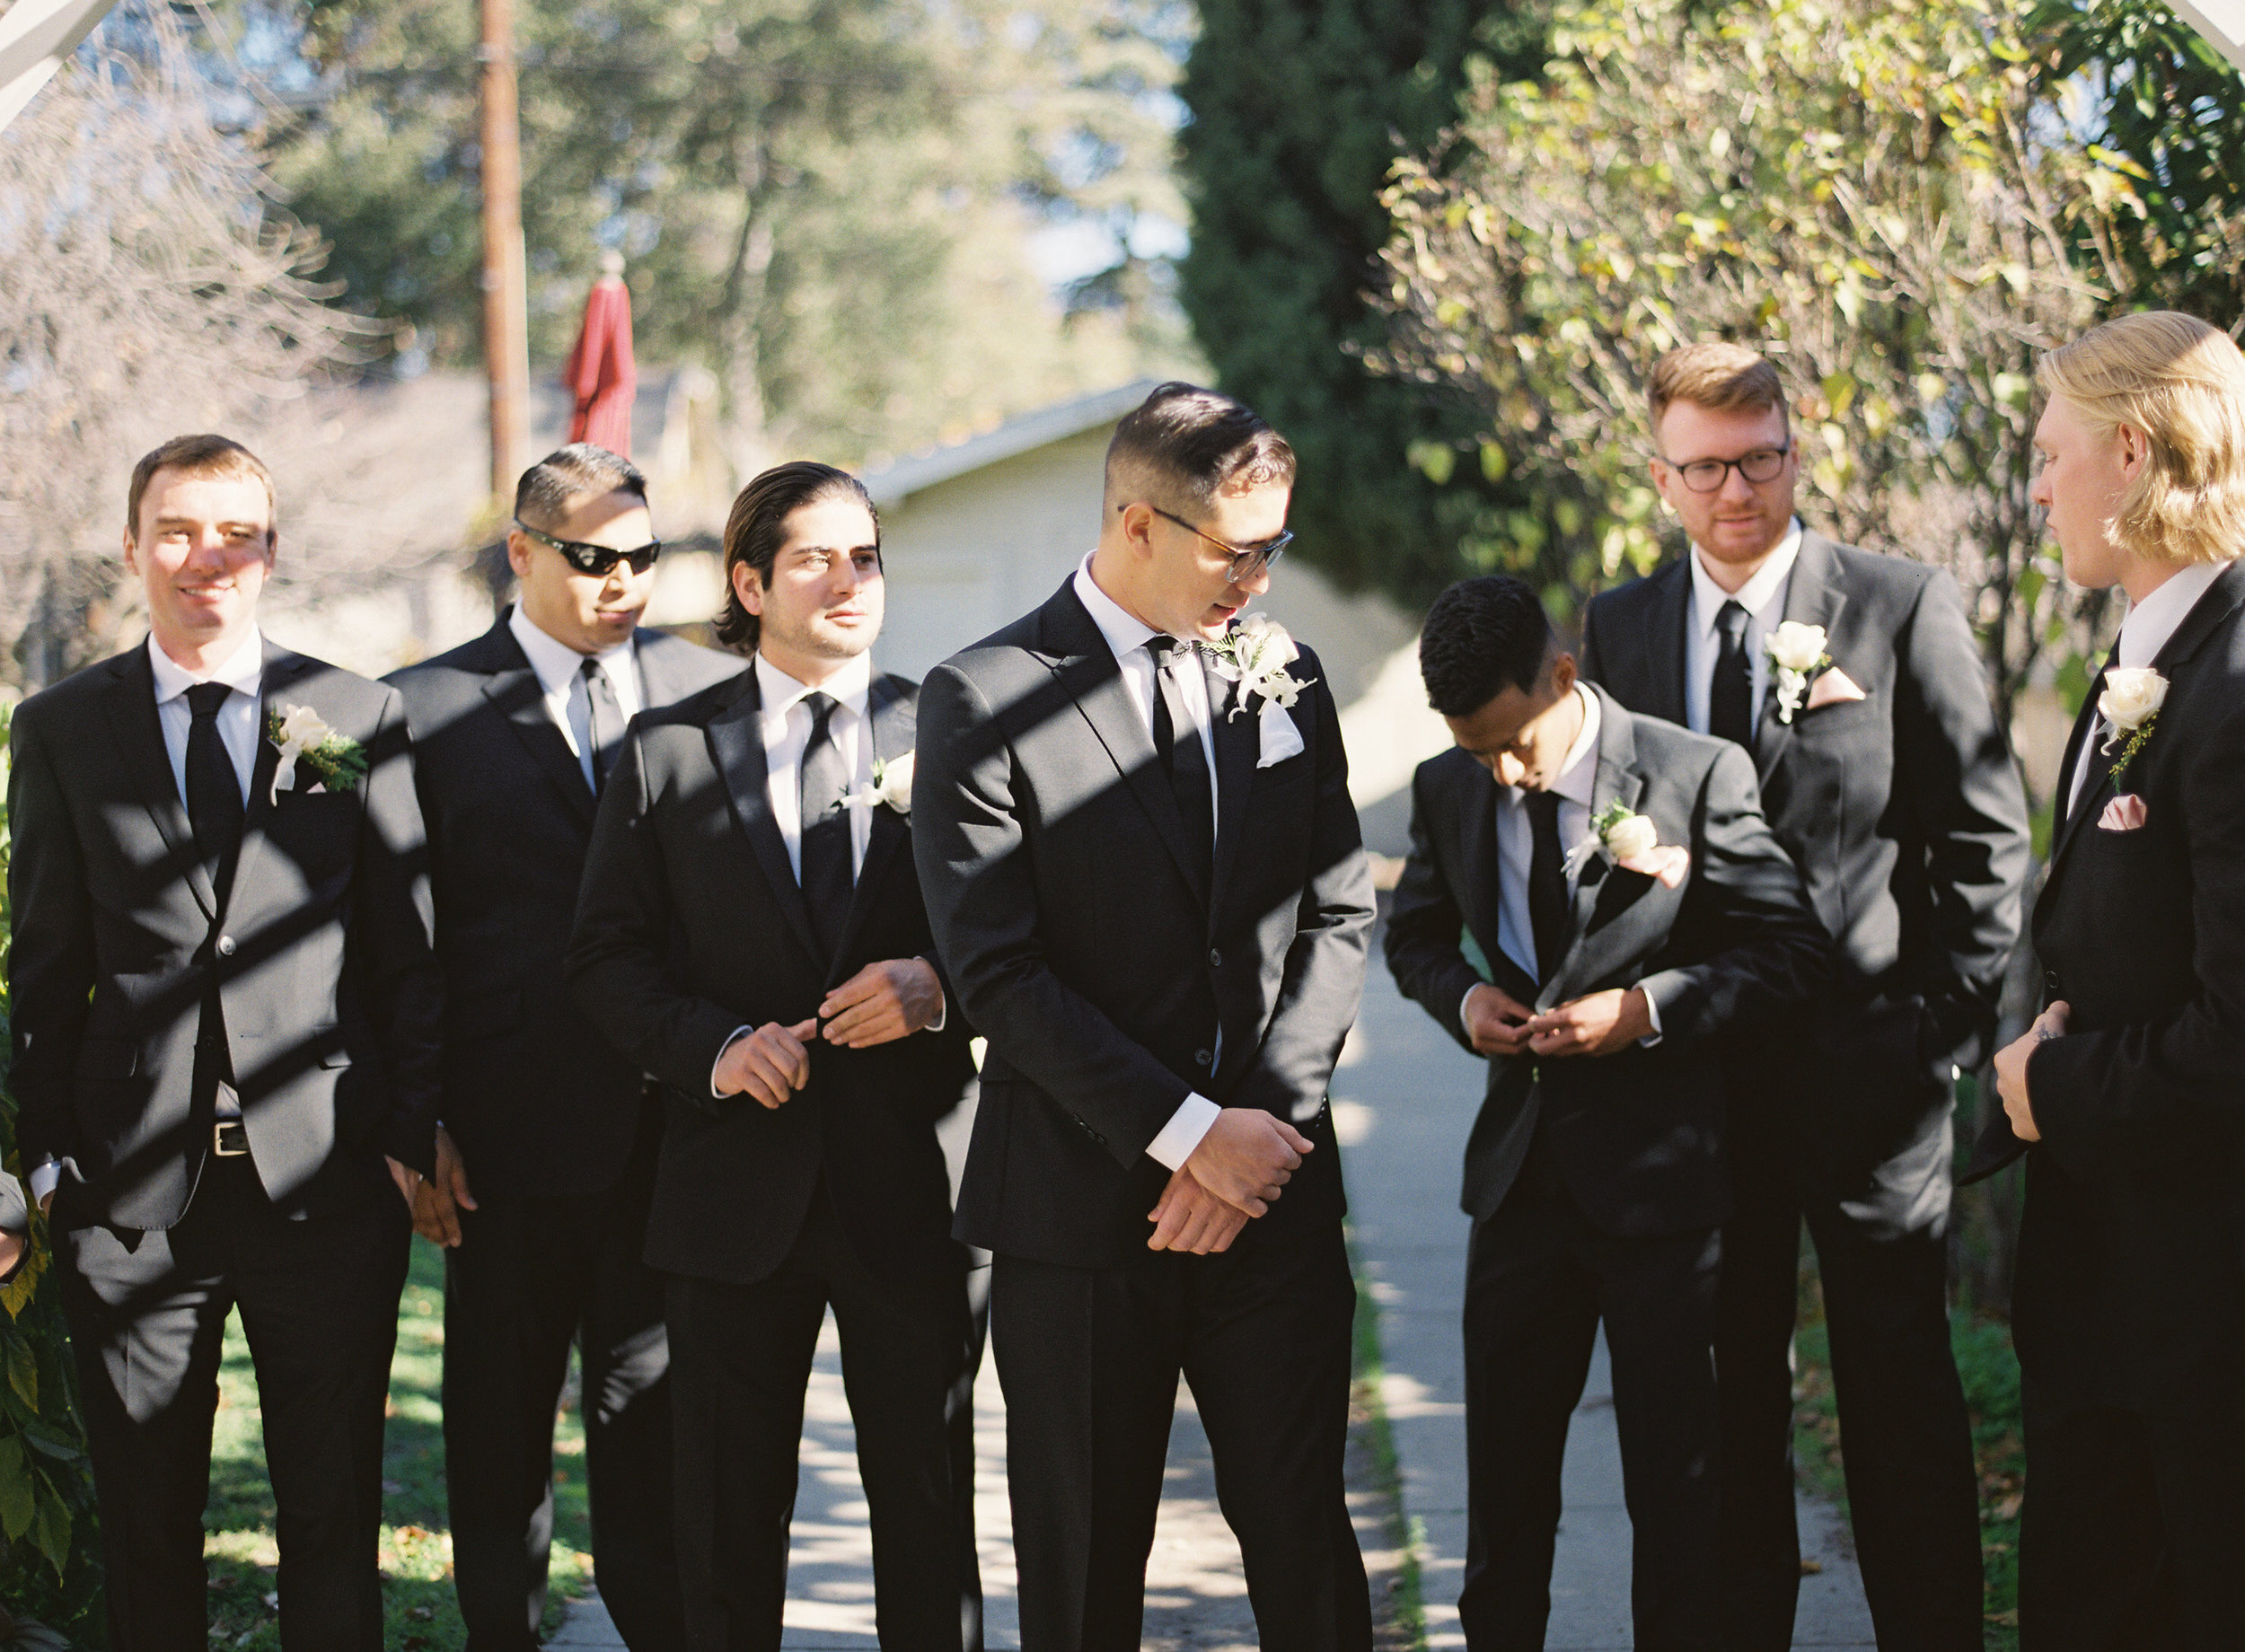 Groomsmen Style | Mens Wearhouse Suits | Southern California Romantic Wedding Near Their Home | Unions With Celia | Amy & Darren Photography